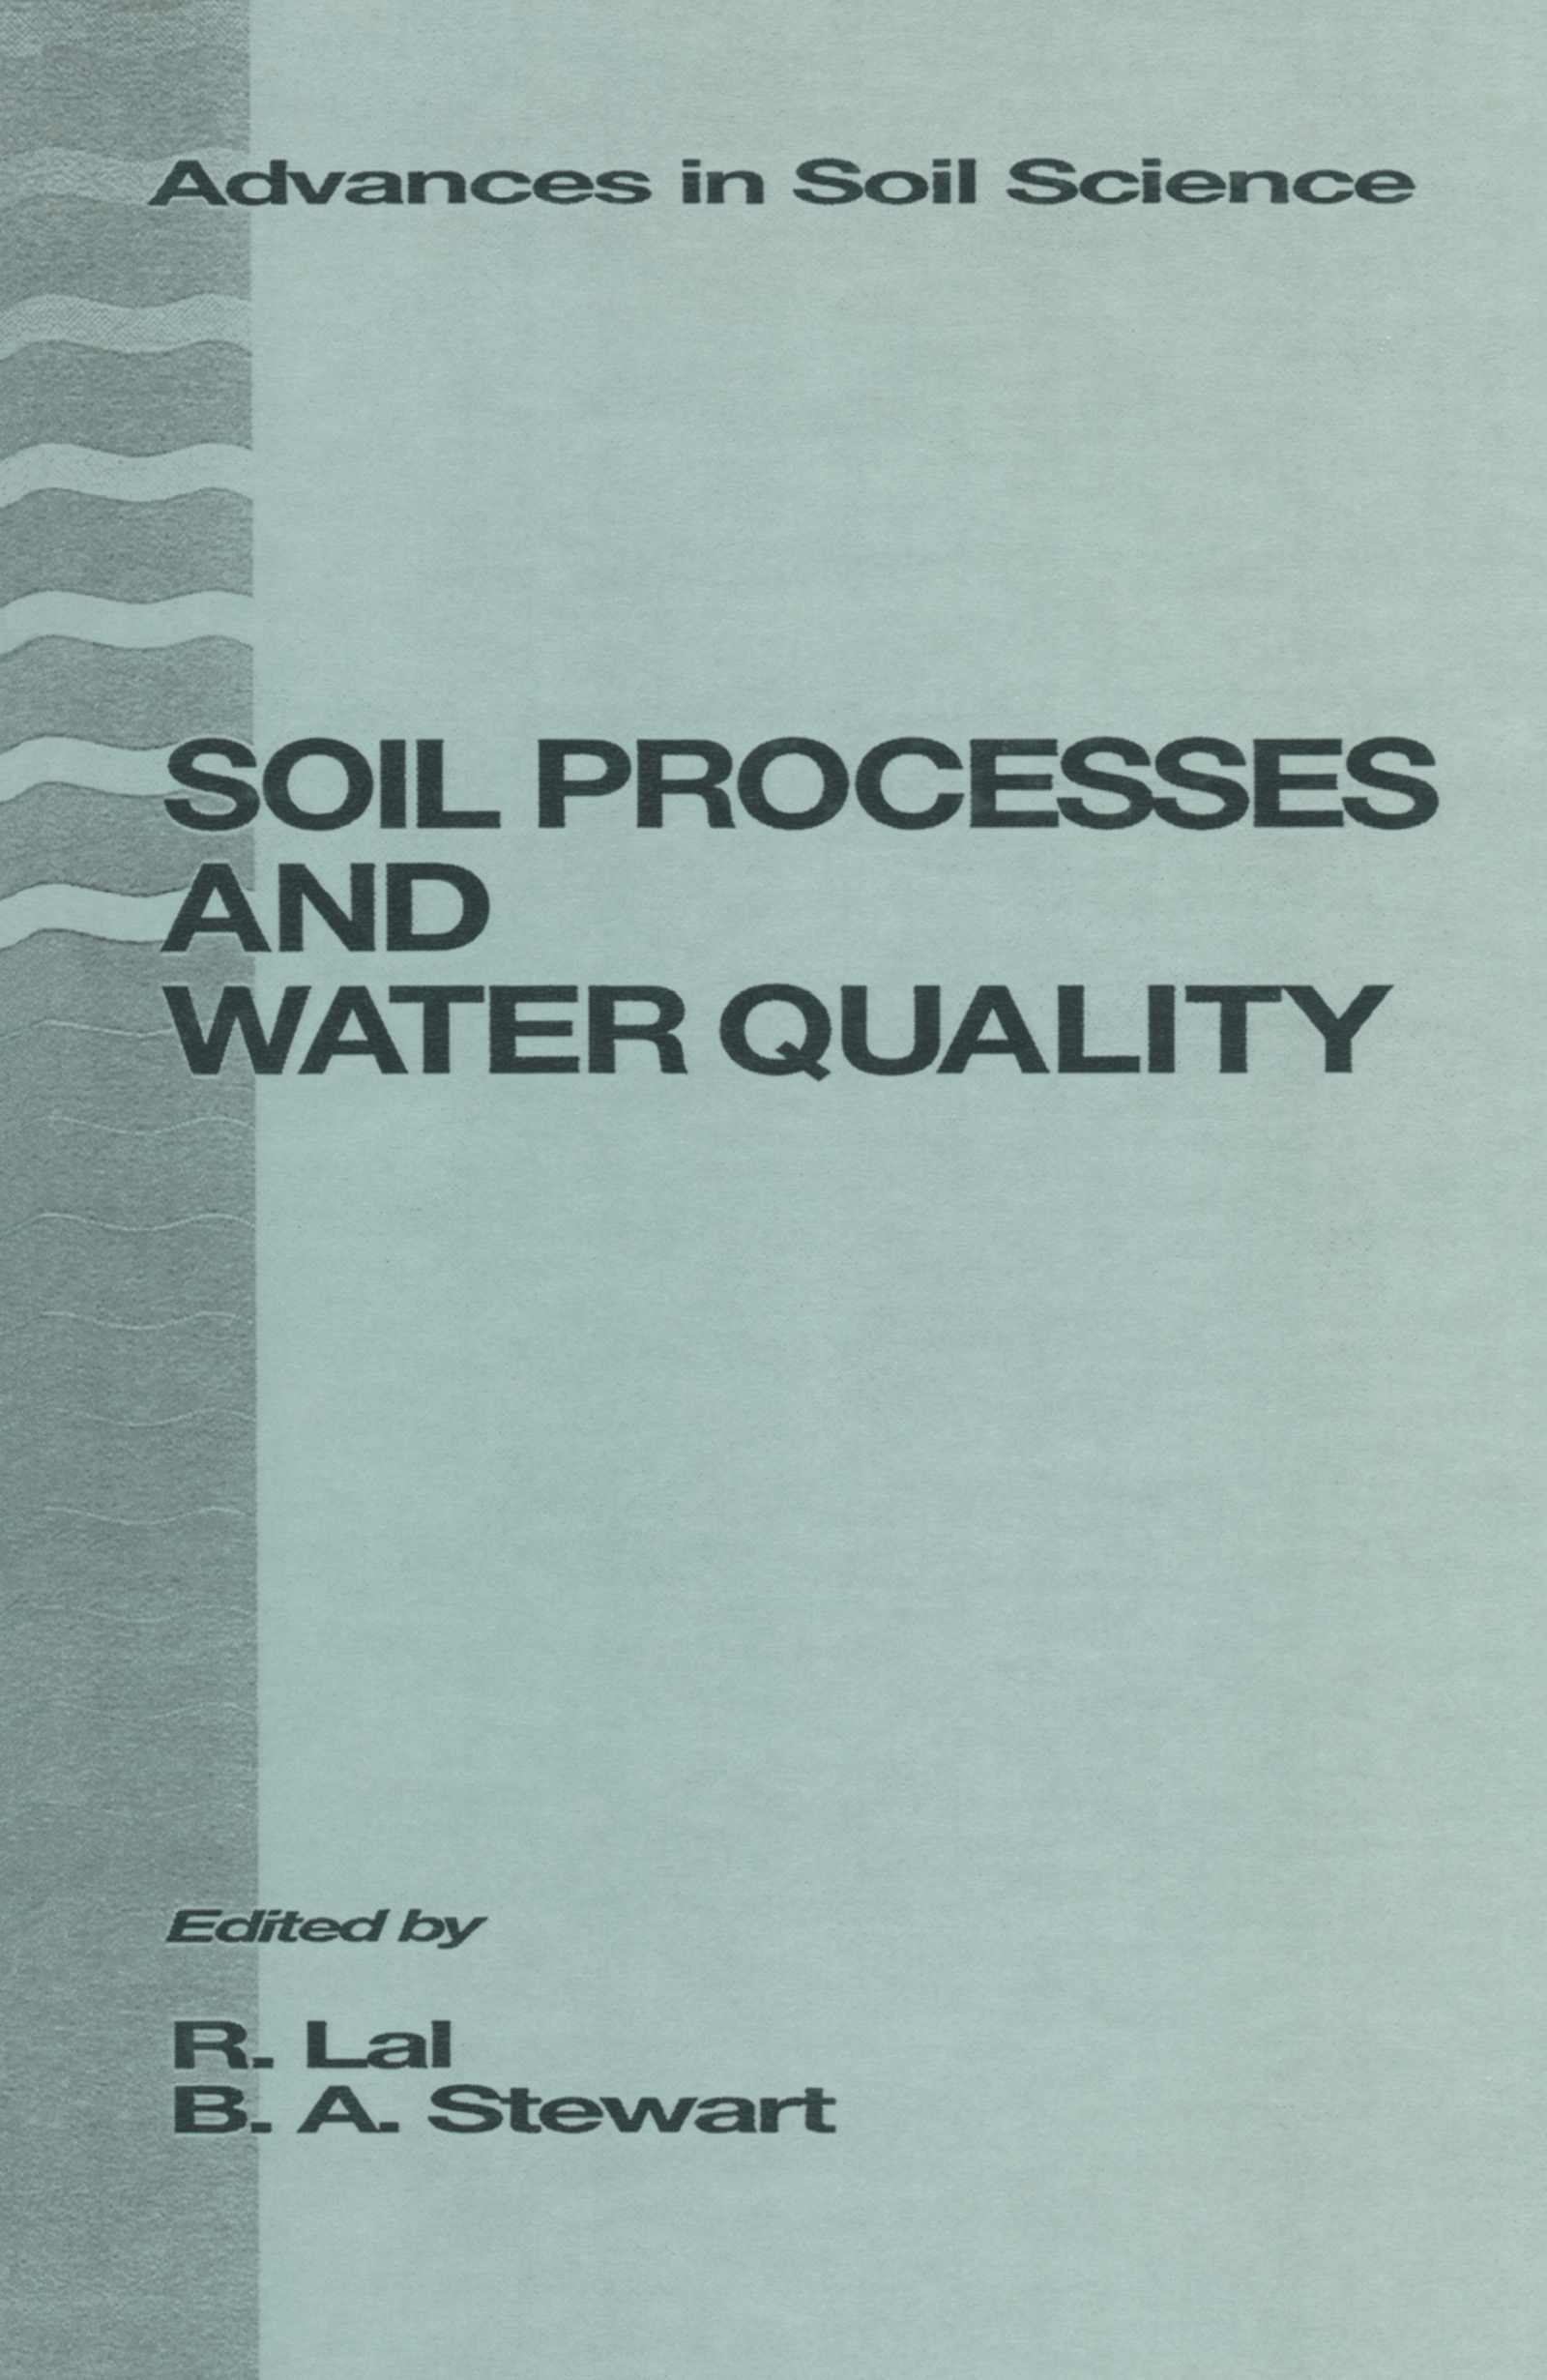 Impacts of Soil N Management on the Quality of Surface and Subsurface Water